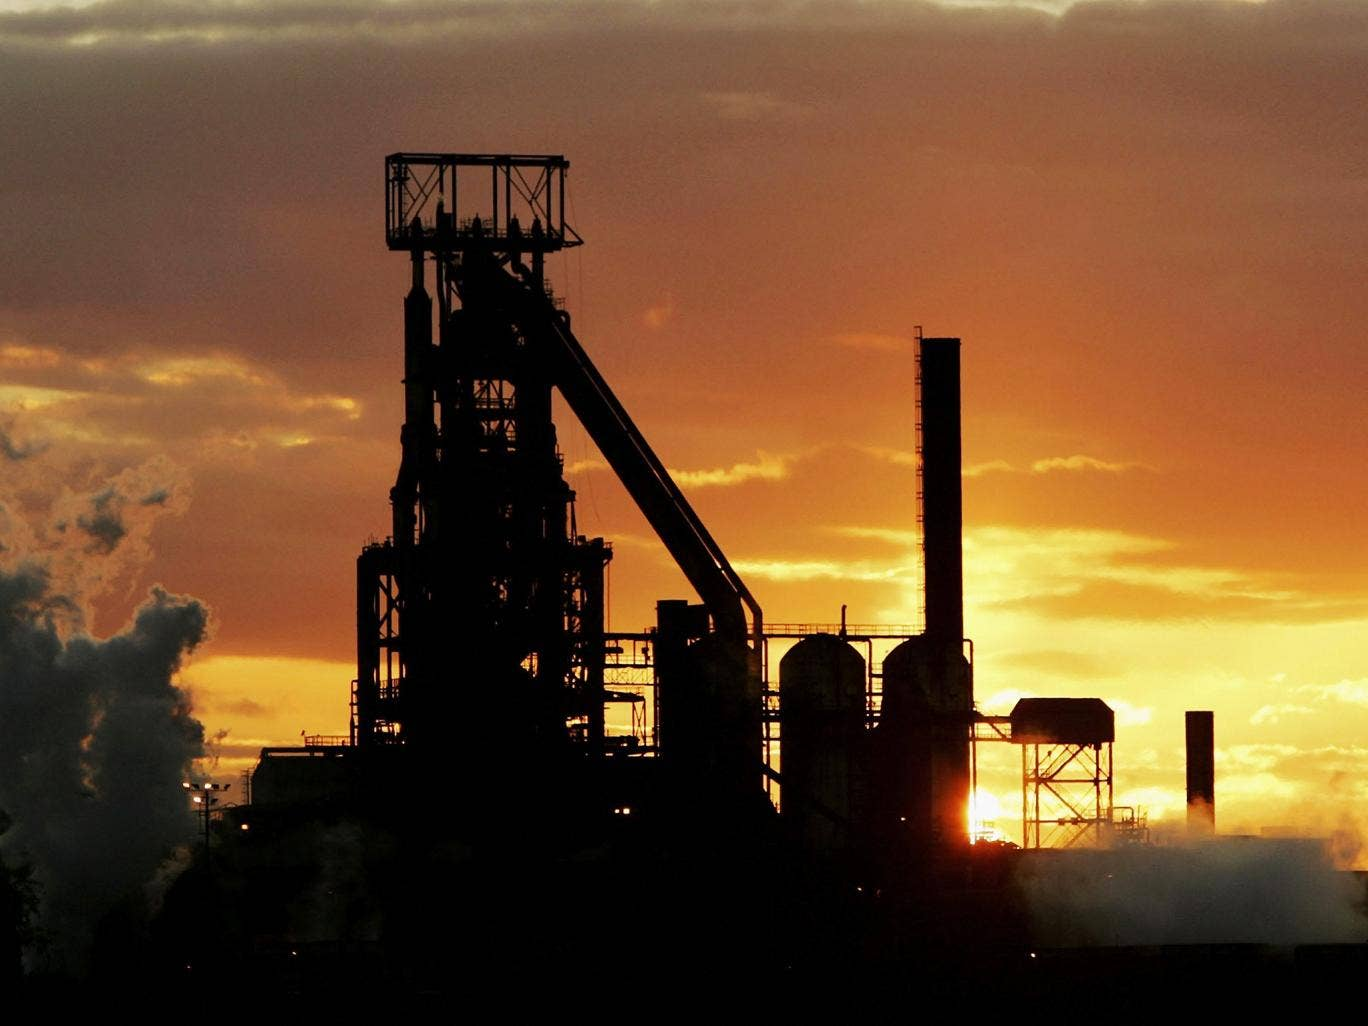 In 2006, the Anglo-Dutch steel firm Corus accepted a £4.3bn takeover offer from Indian rival Tata Steel, including the Port Talbot site pictured here